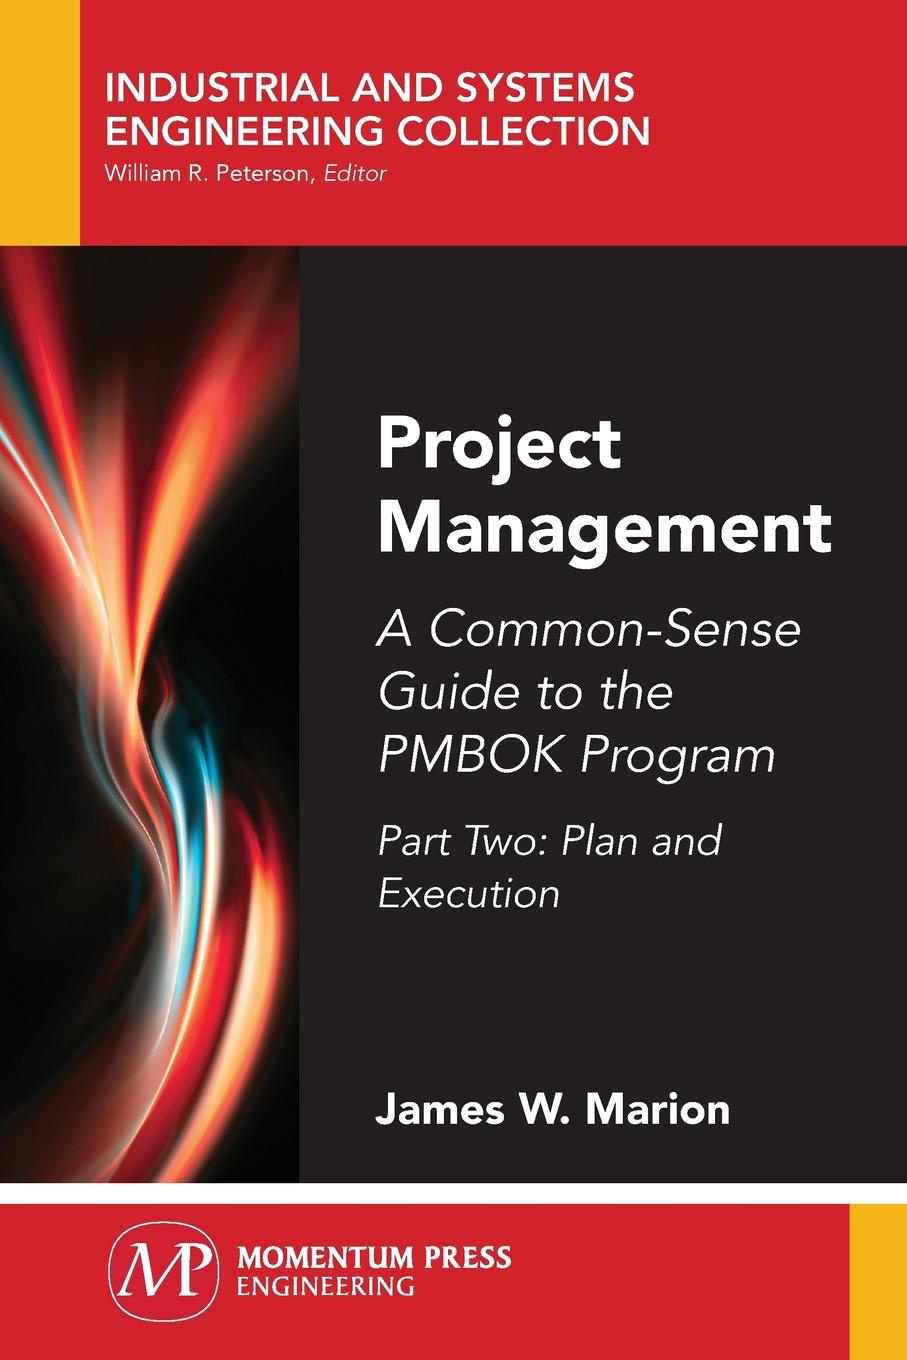 James W. Marion Project Management. A Common-Sense Guide to the PMBOK Program, Part Two-Plan and Execution